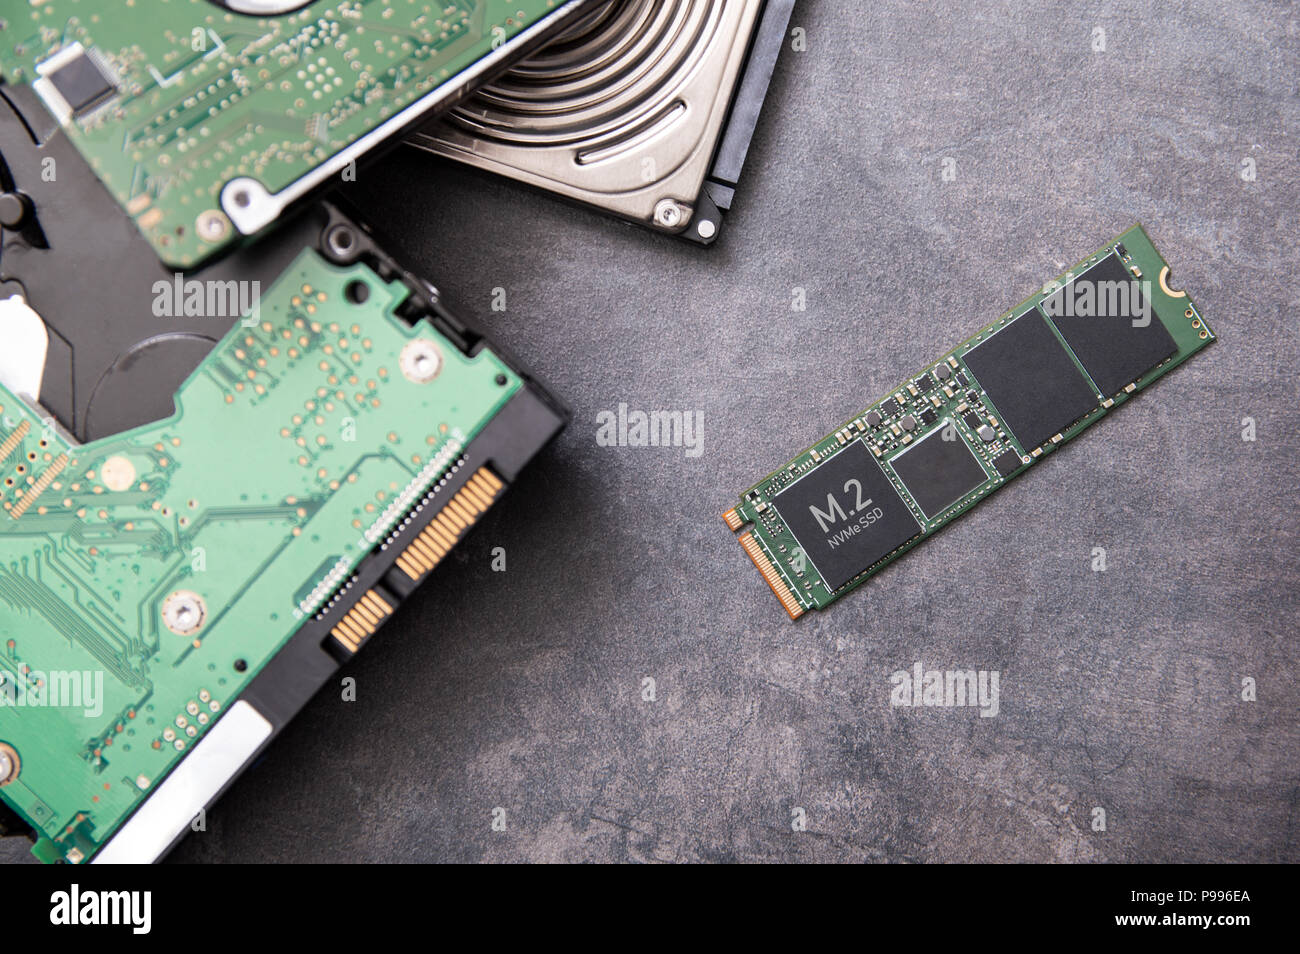 Modern M.2 SSD drive and old hard disk drives lie on a stone slab - Stock Image